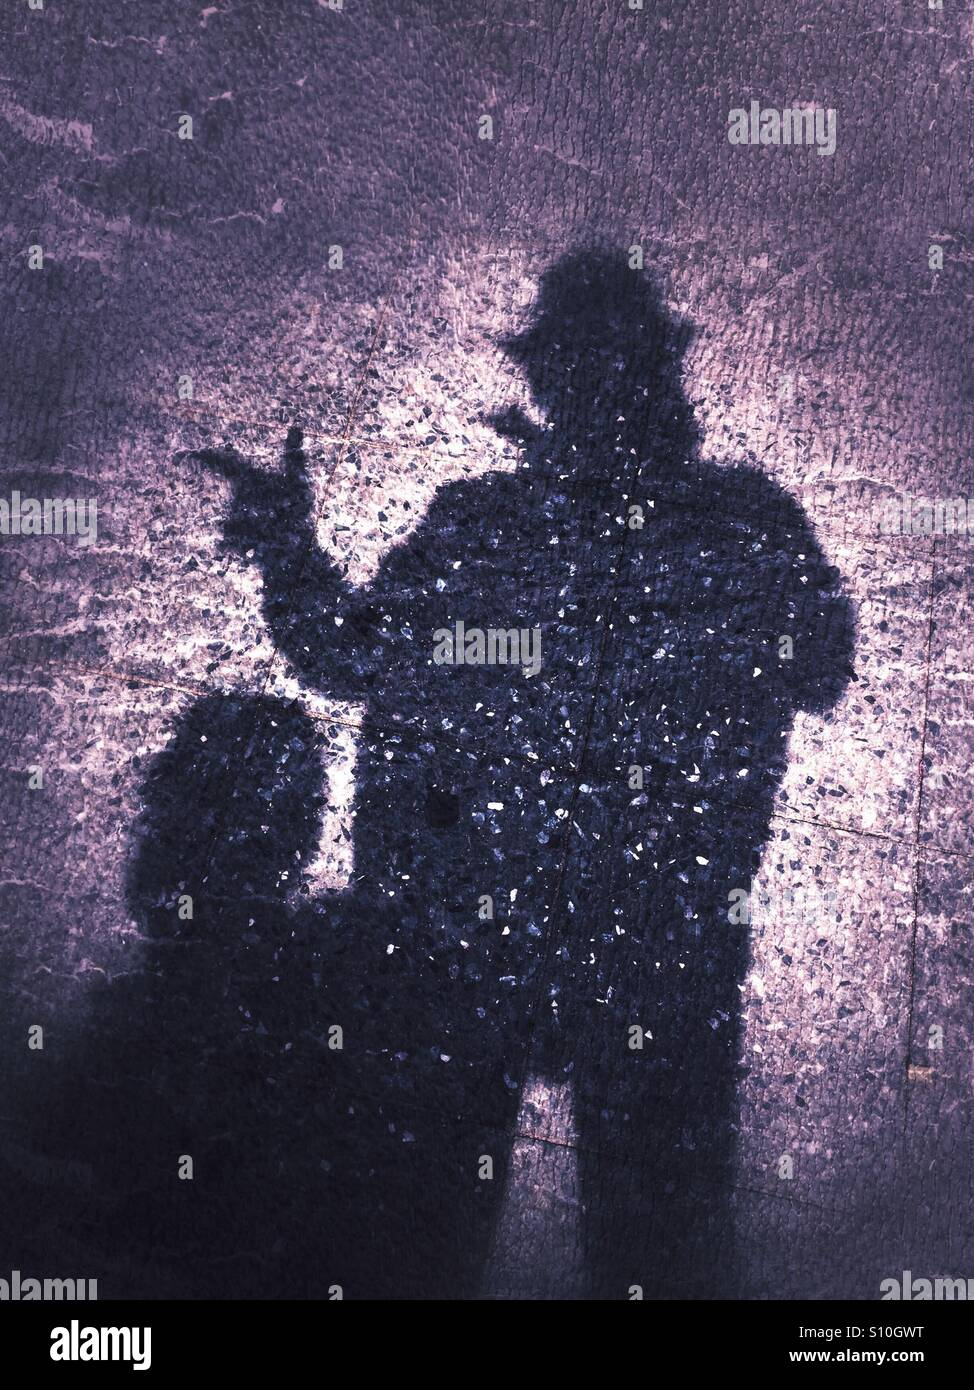 Gangster shadow on ground - Stock Image